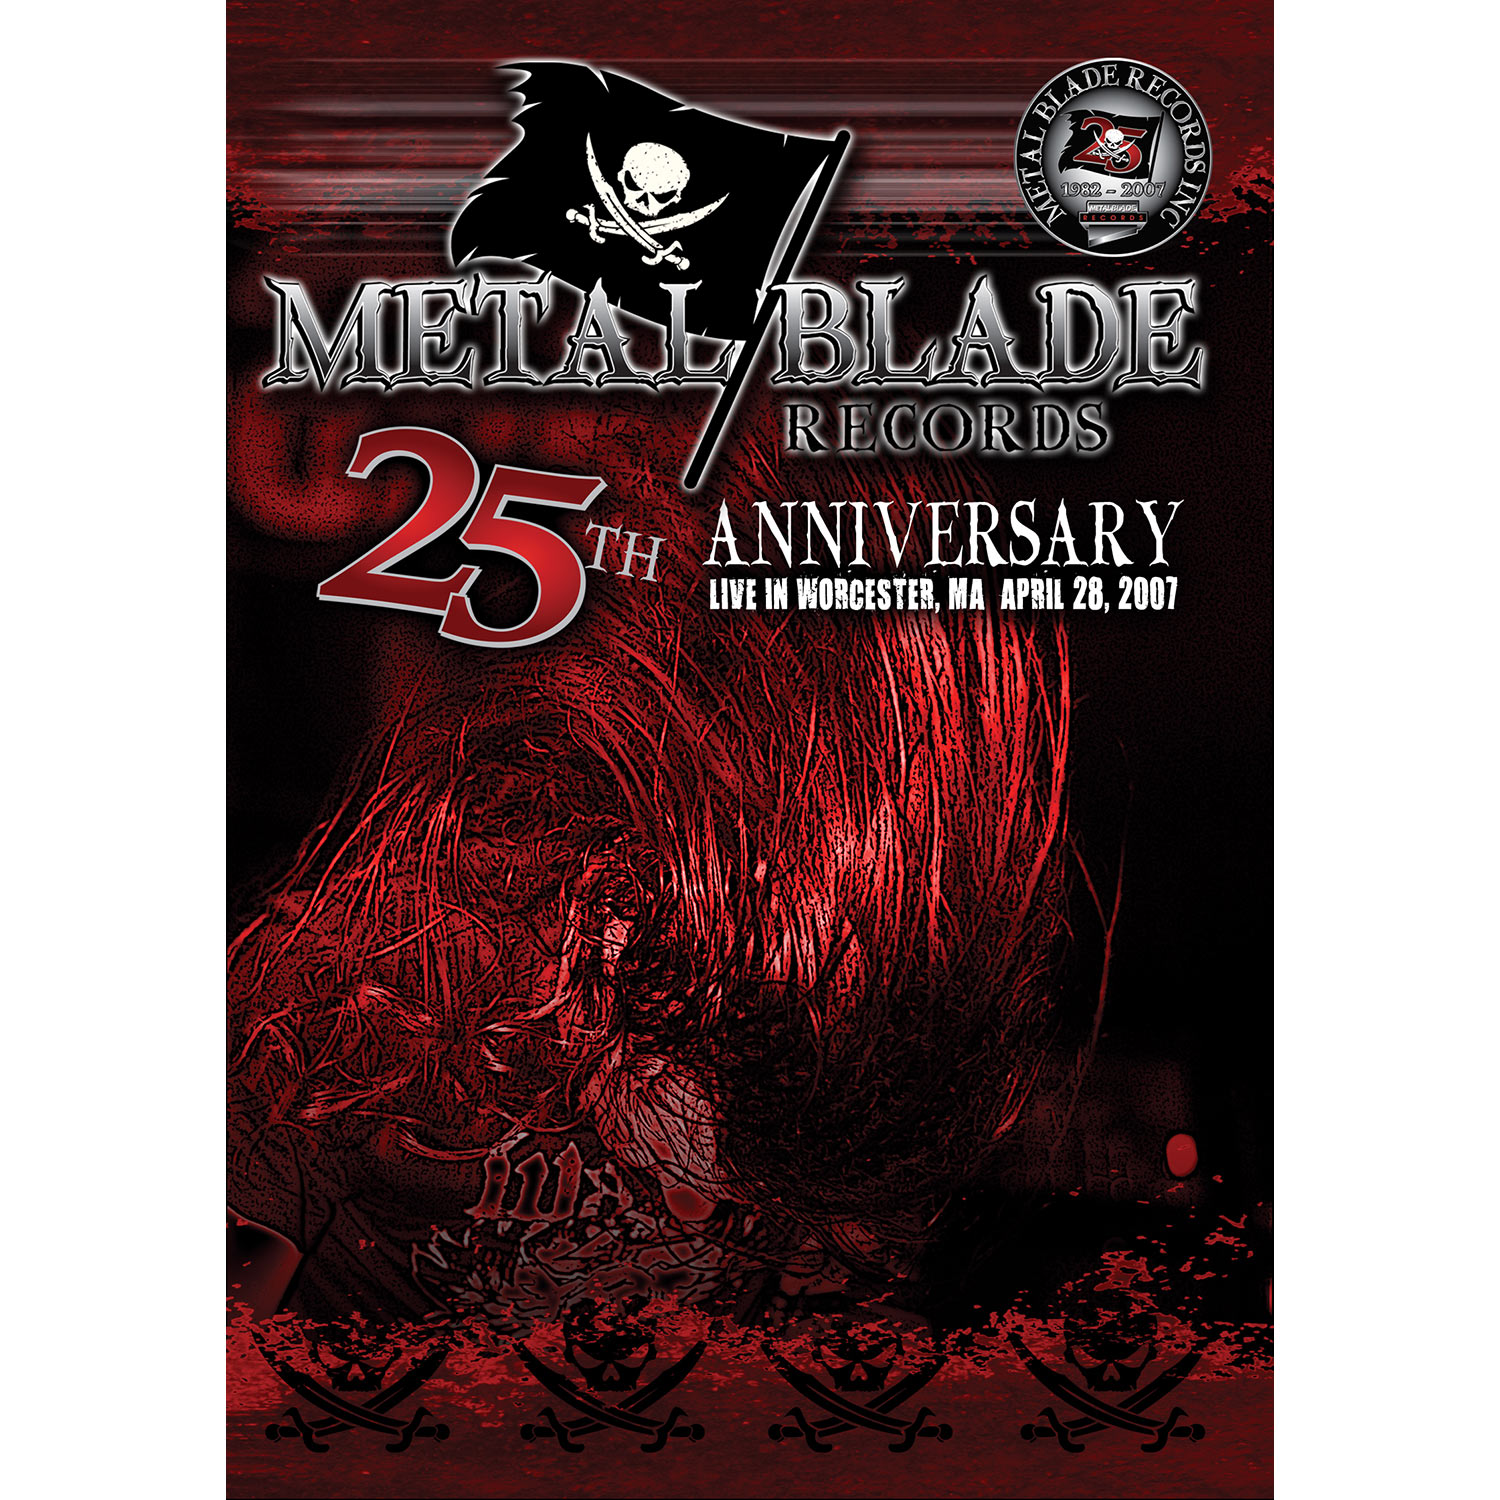 METAL BLADE RECORDS 25th